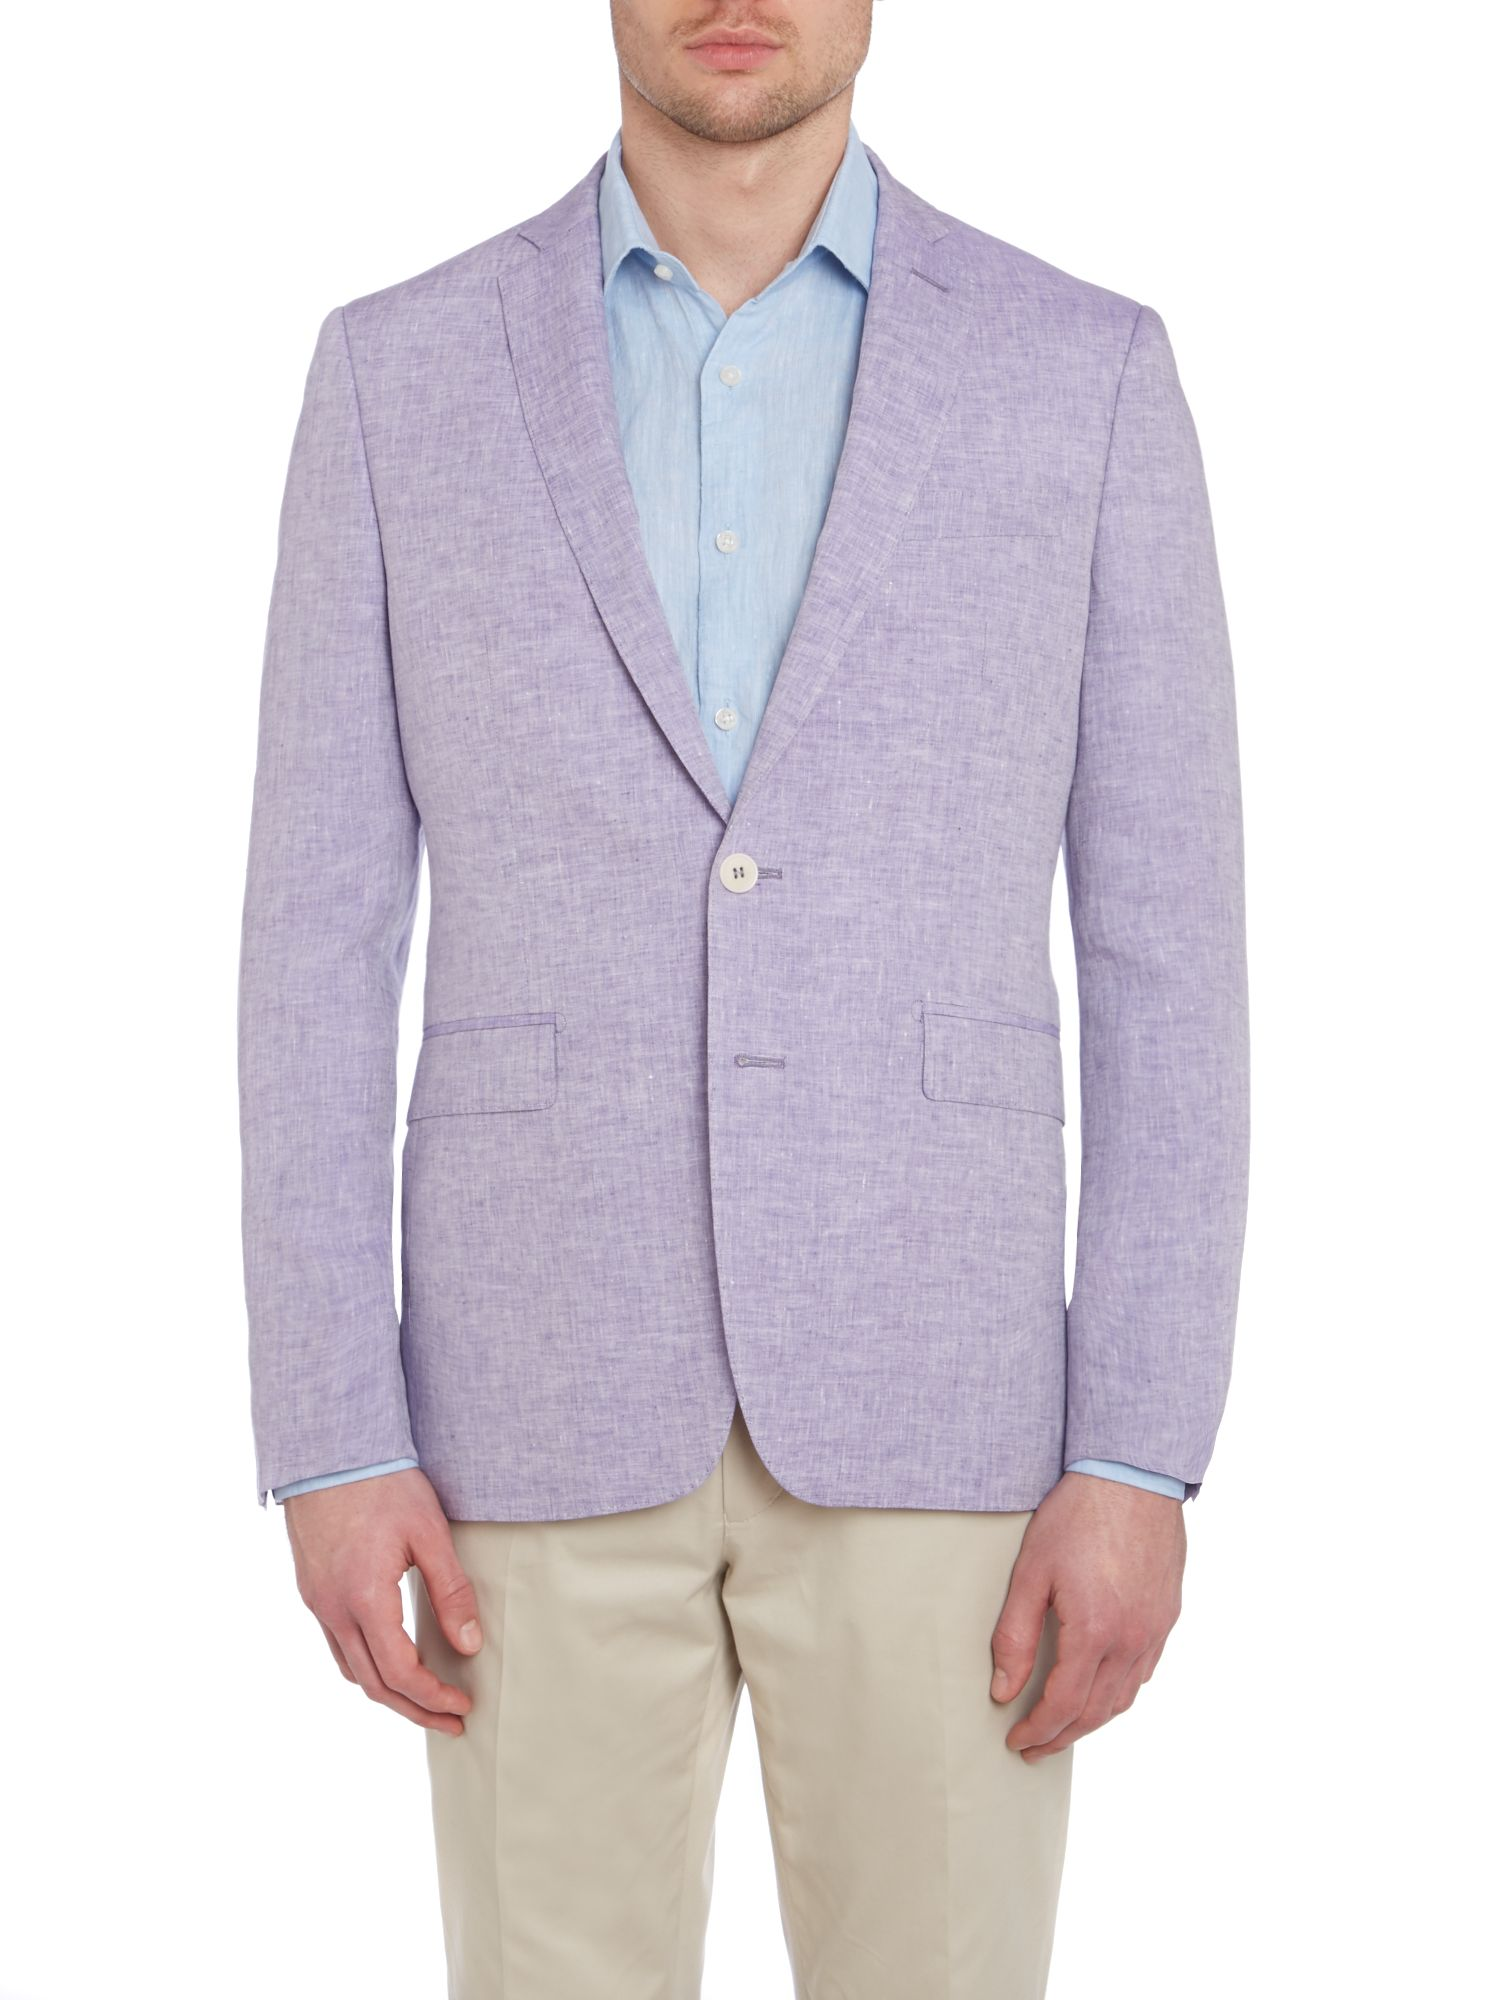 Contemporary chambray linen jacket